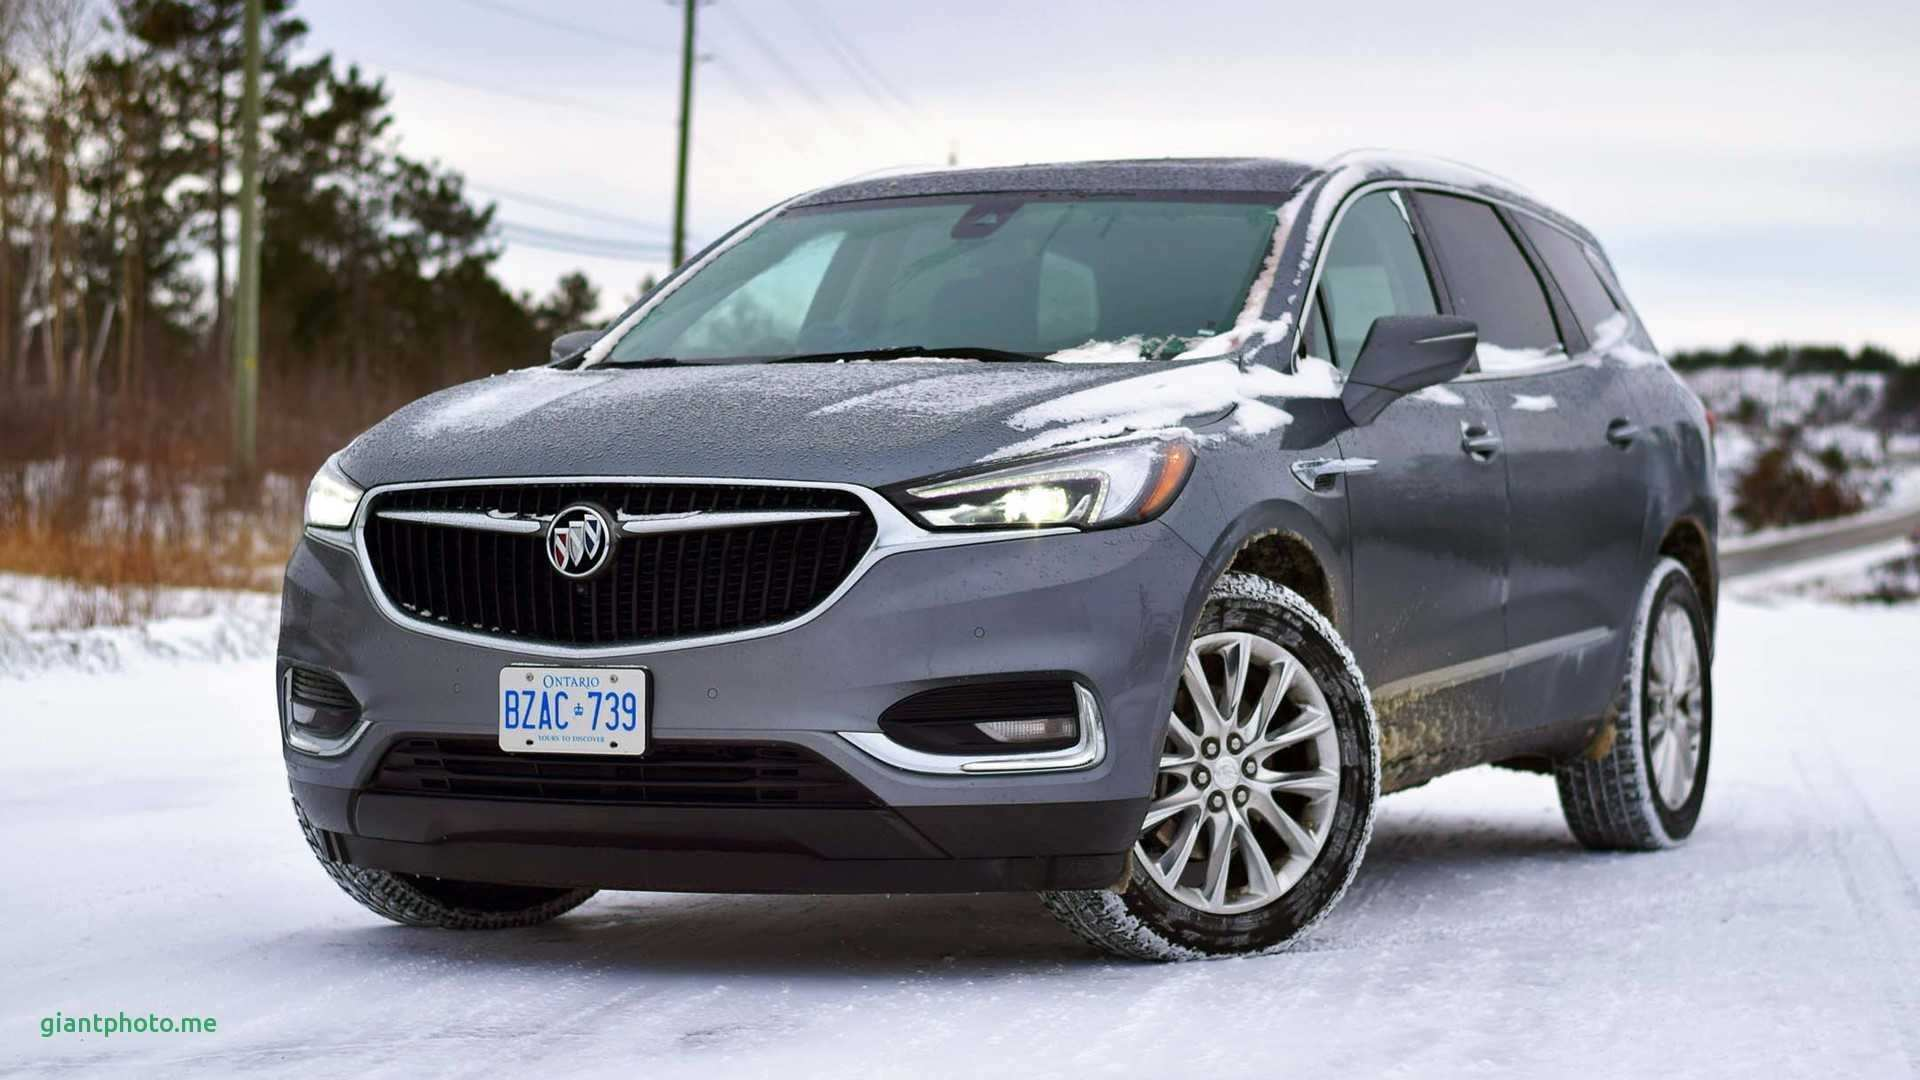 98 All New 2020 Buick Enclave Spy Photos Price And Review